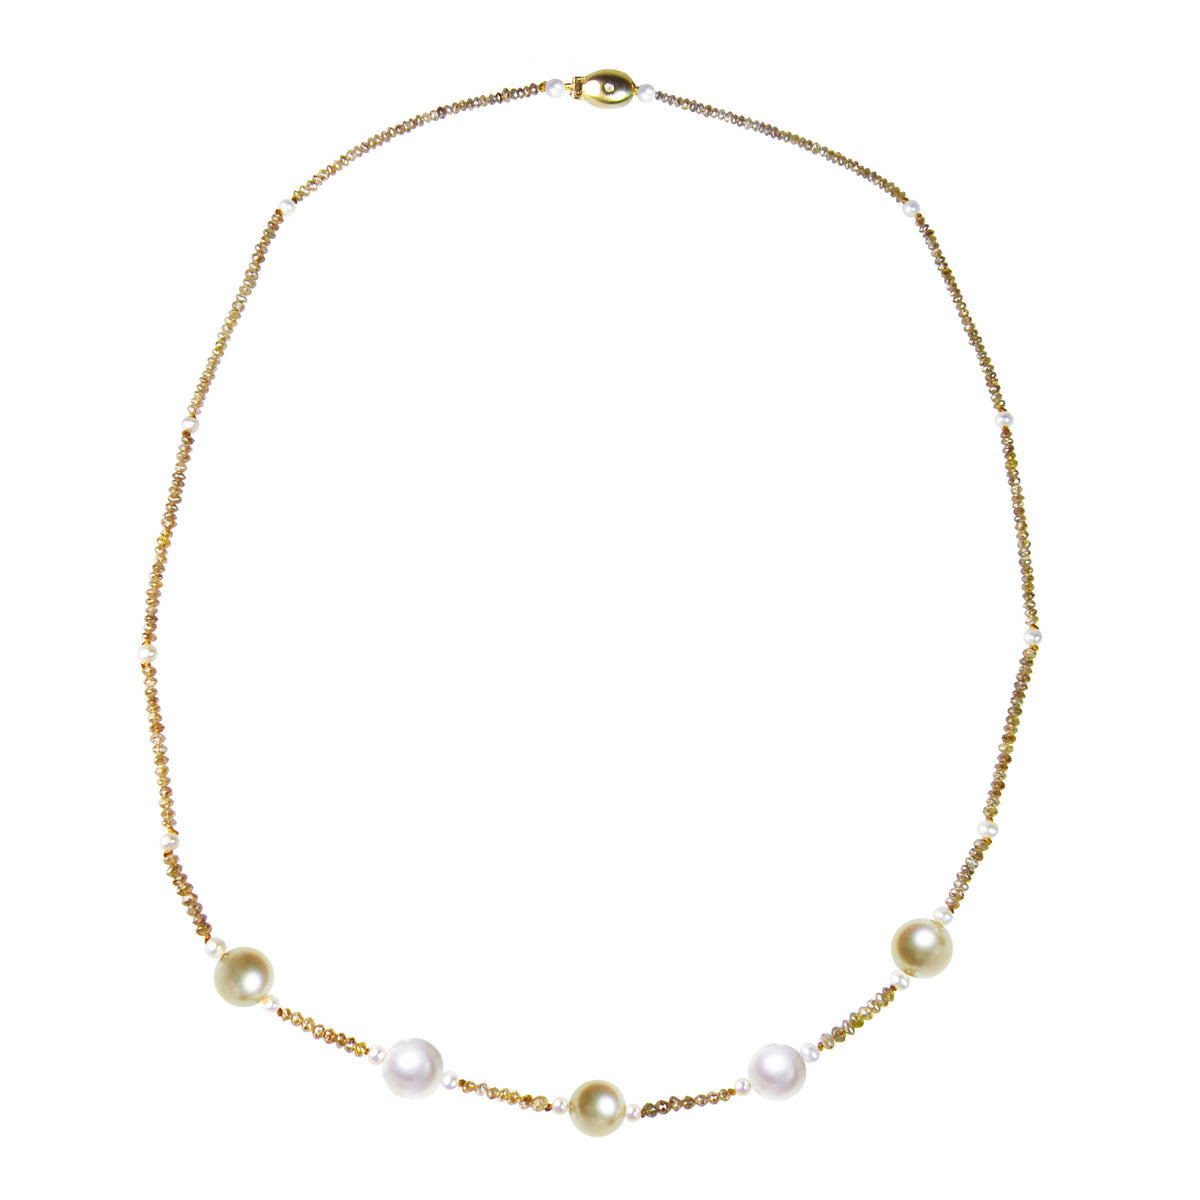 Golden South Sea Pearl & Cognac Diamond Necklace